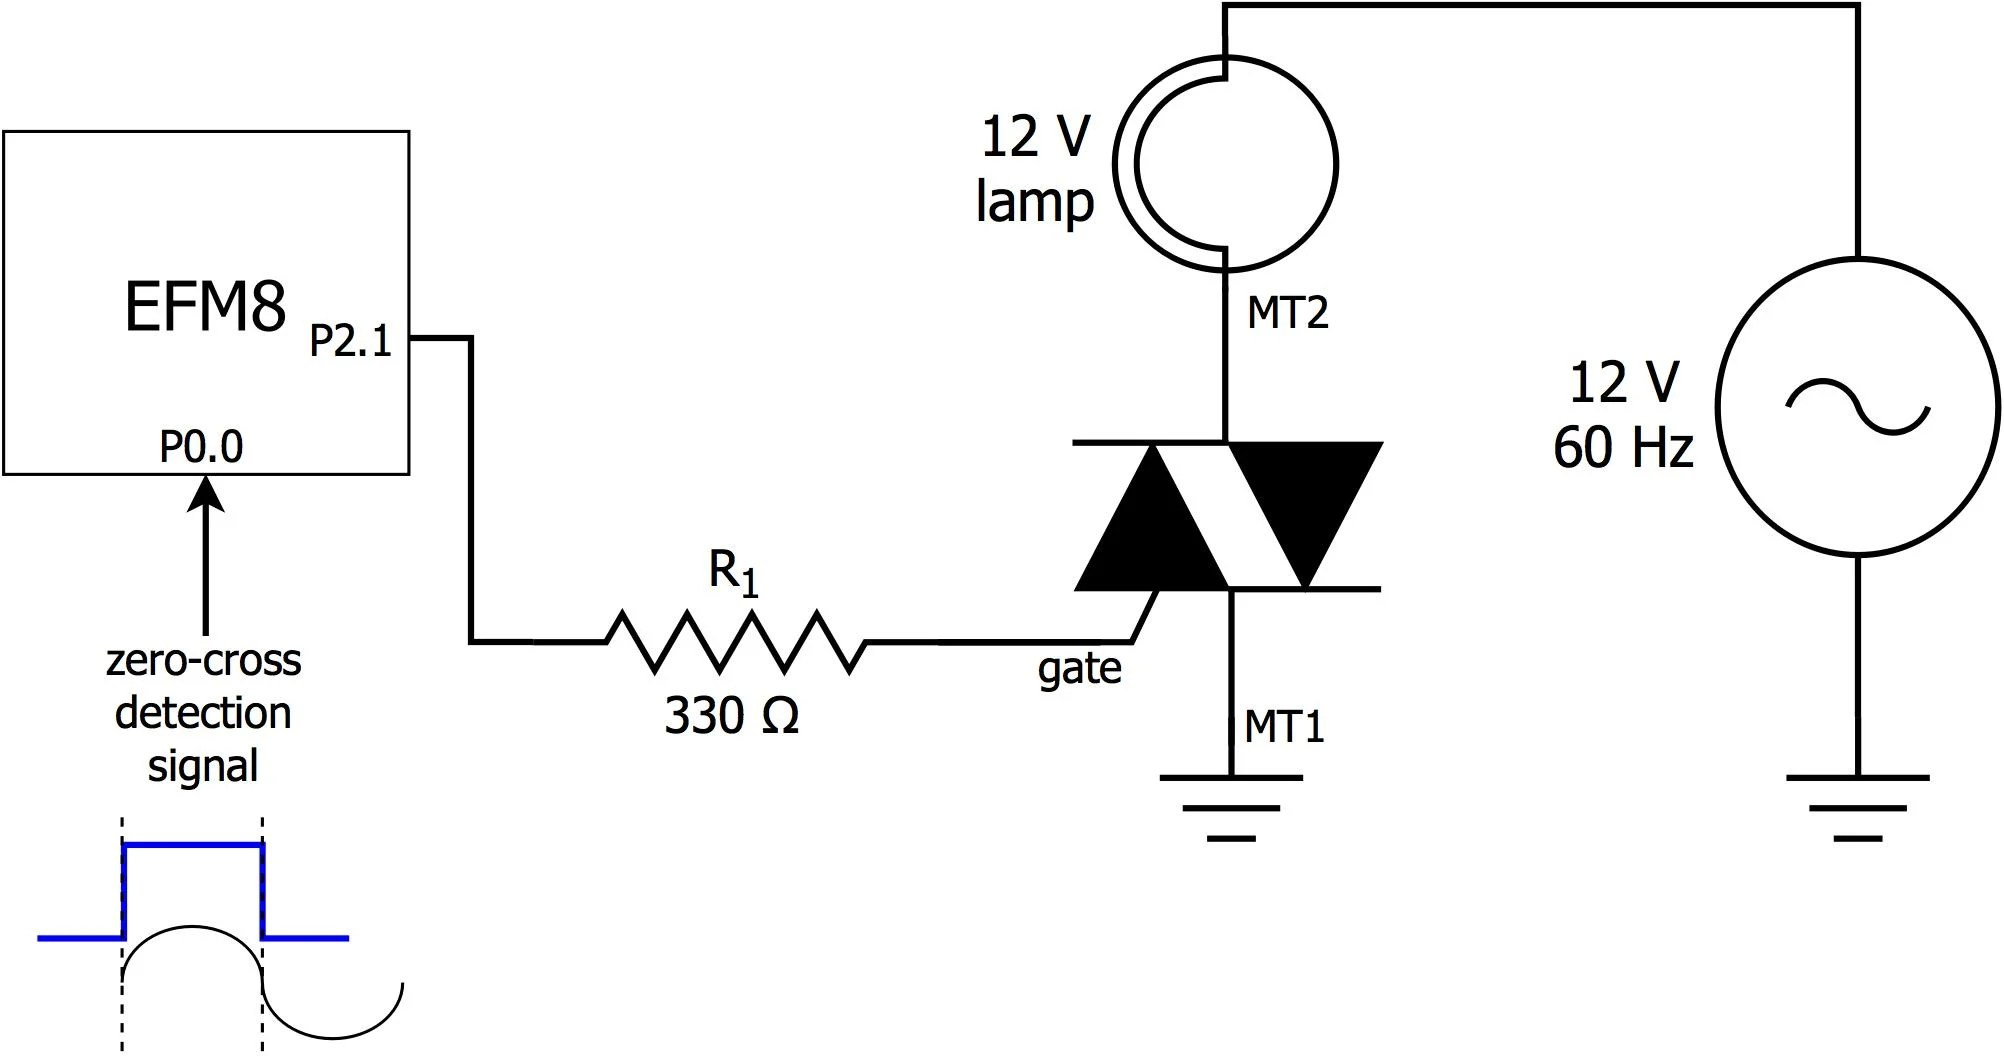 Ambient Light Monitor: Using a Triac to Adjust Lamp Brightness